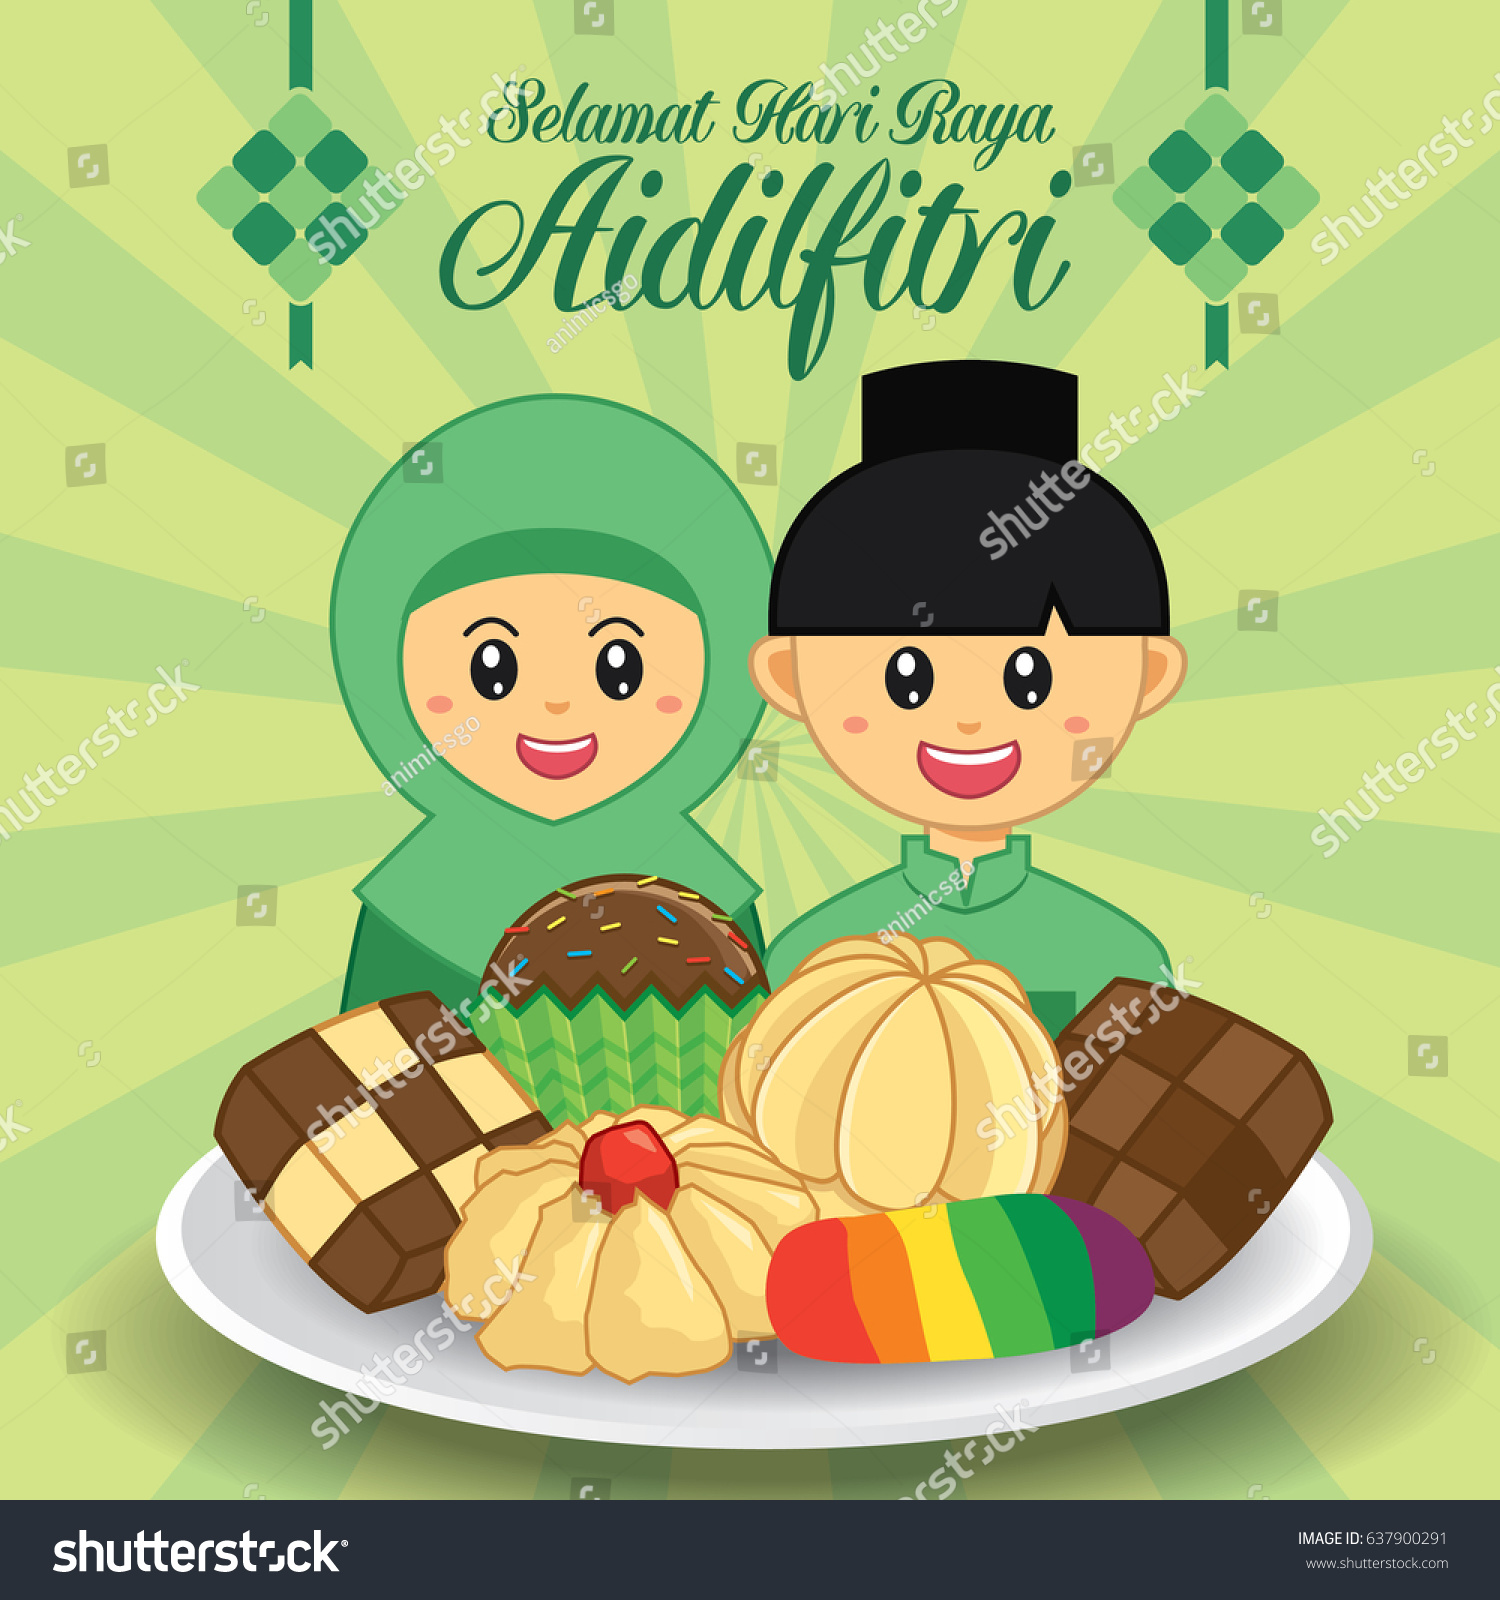 Hari Raya Aidilfitri Vector Illustration Traditional Stock Vector Royalty Free 637900291